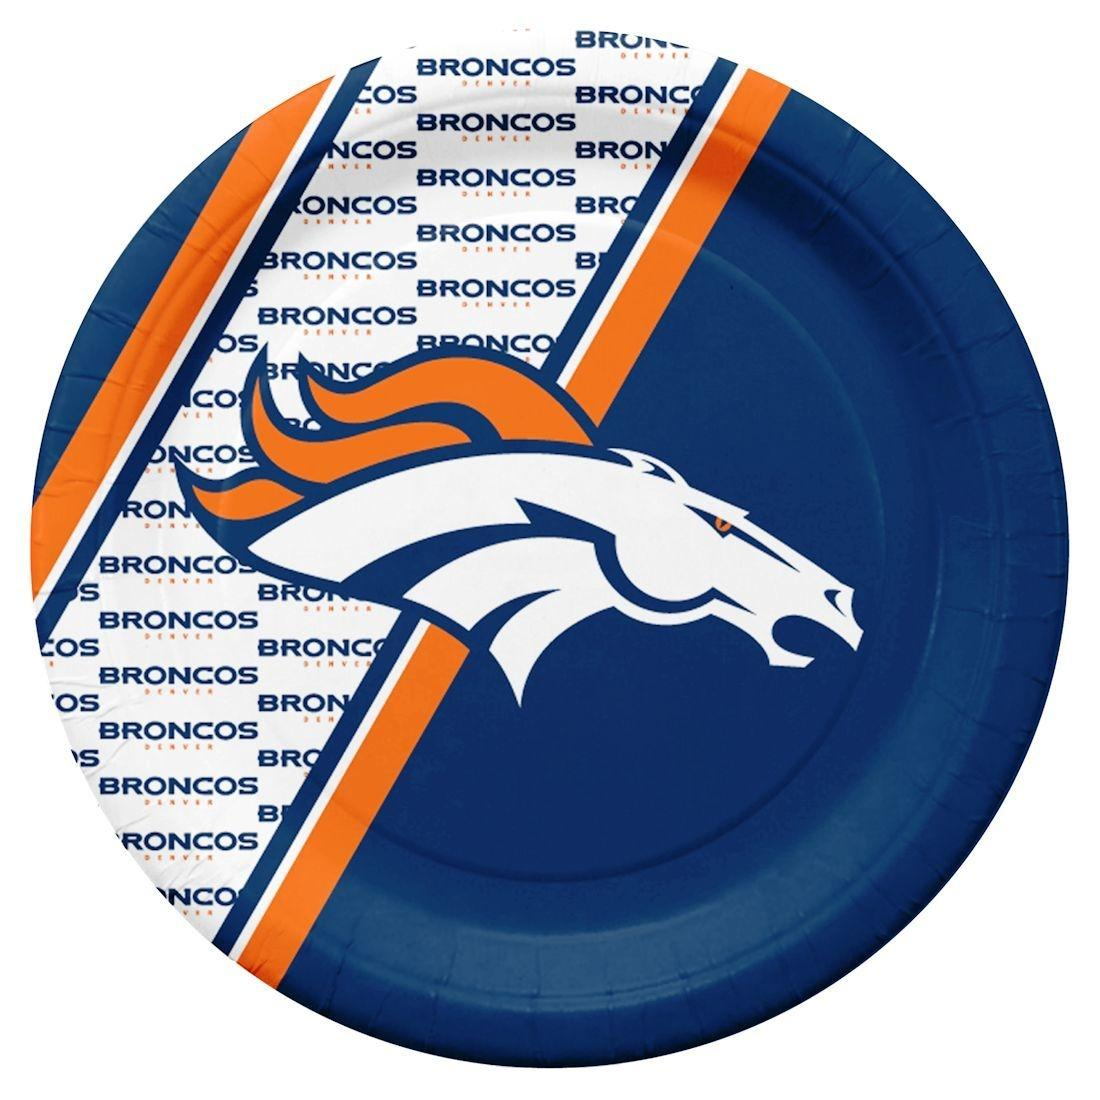 Denver Broncos Disposable Paper Plates - 9413106076 - Nfl Football Denver Broncos License Plates Frames 9413106076